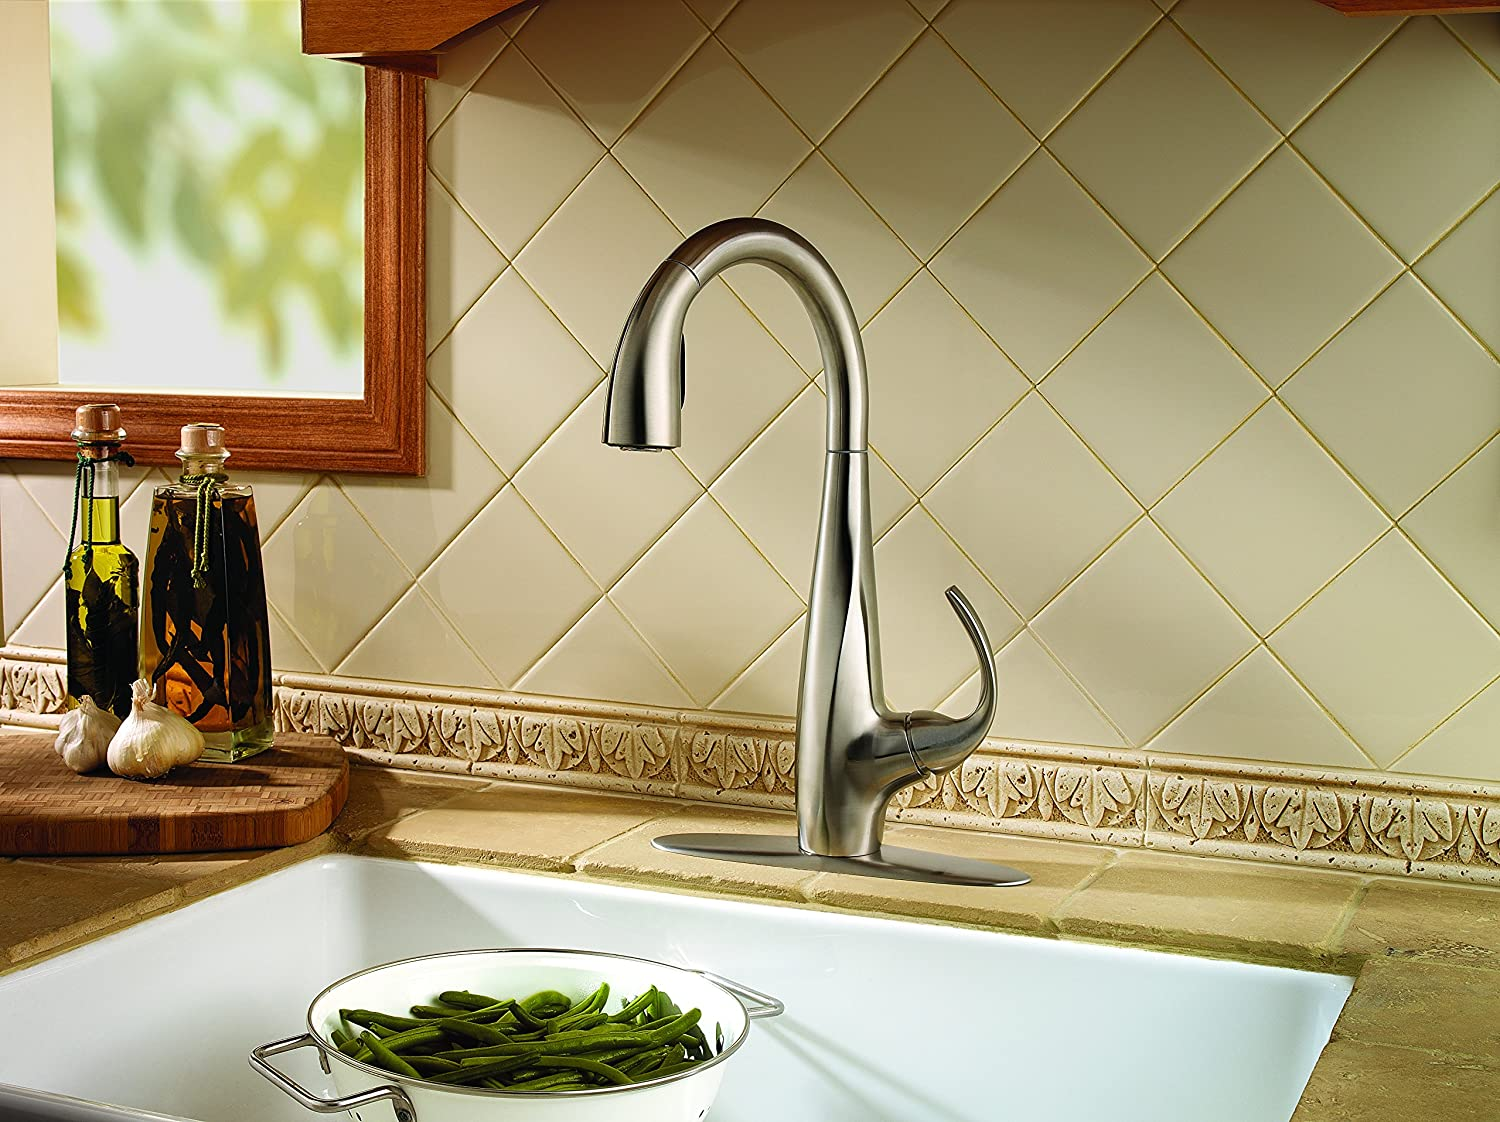 Pfister Lf5297ans Avanti 1 Handle Pull Down Kitchen Faucet Stainless Steel 1 8 Gpm Amazon Com